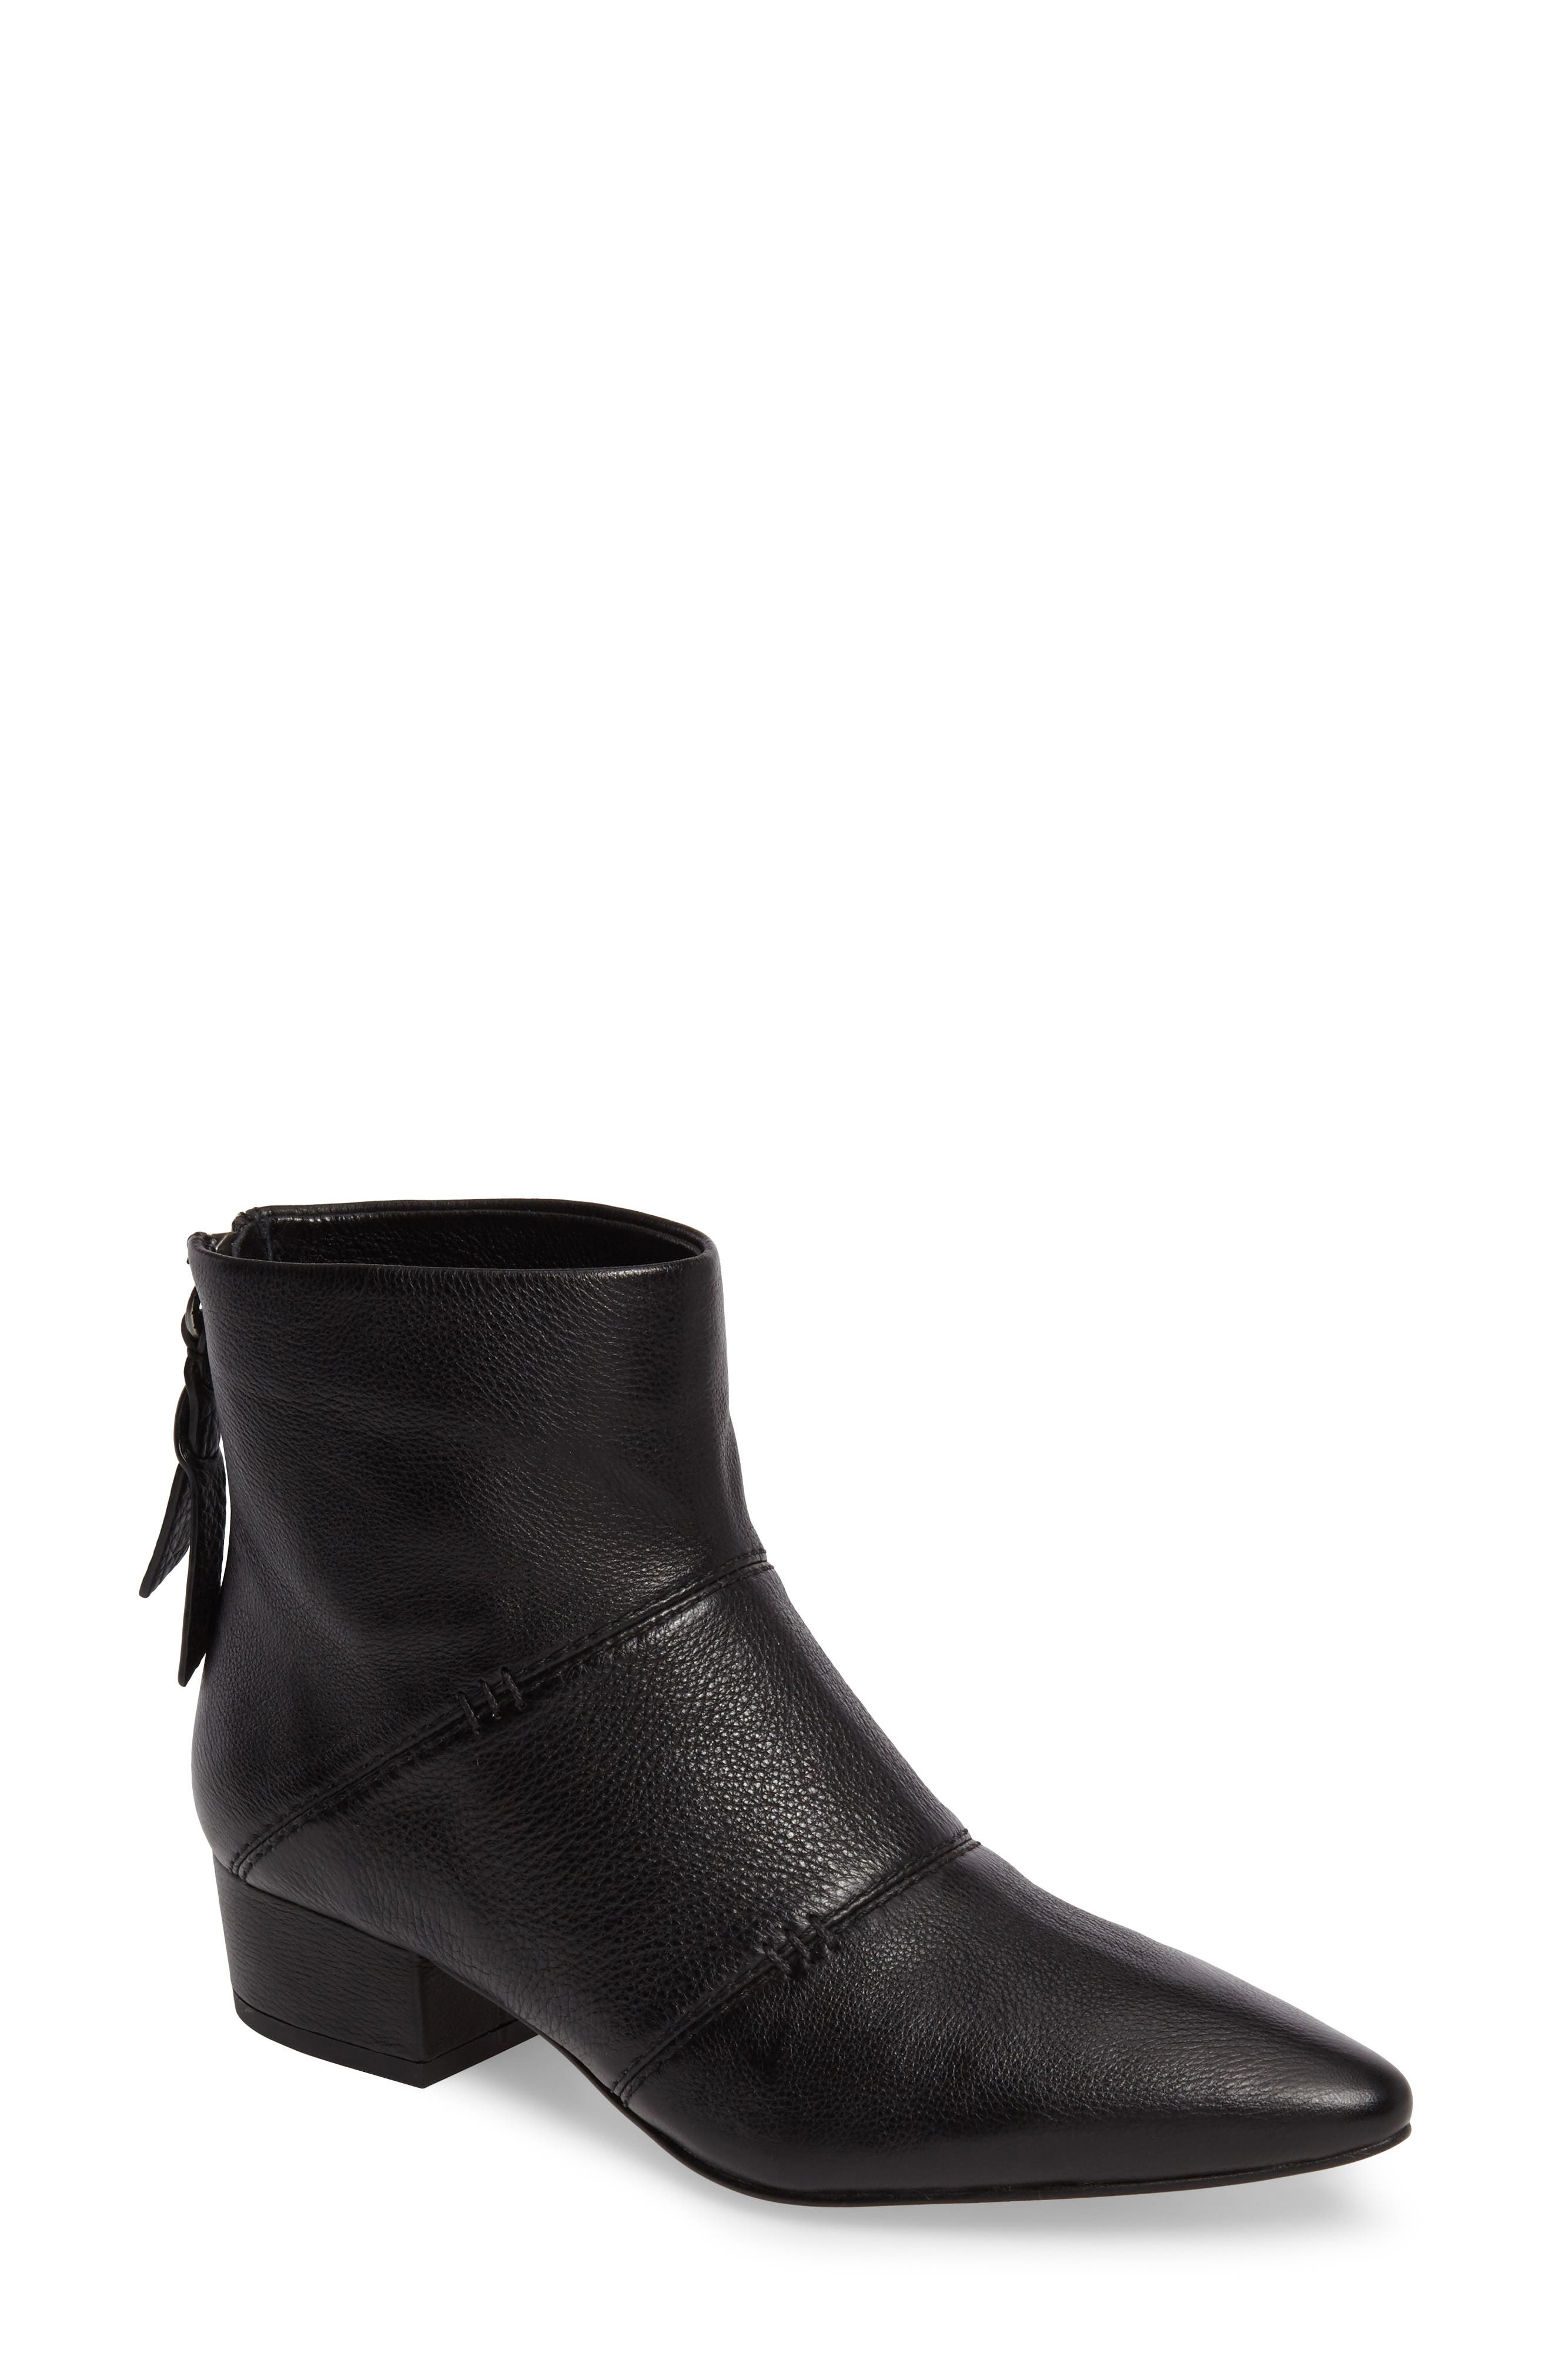 Rina Bootie,                         Main,                         color, 002